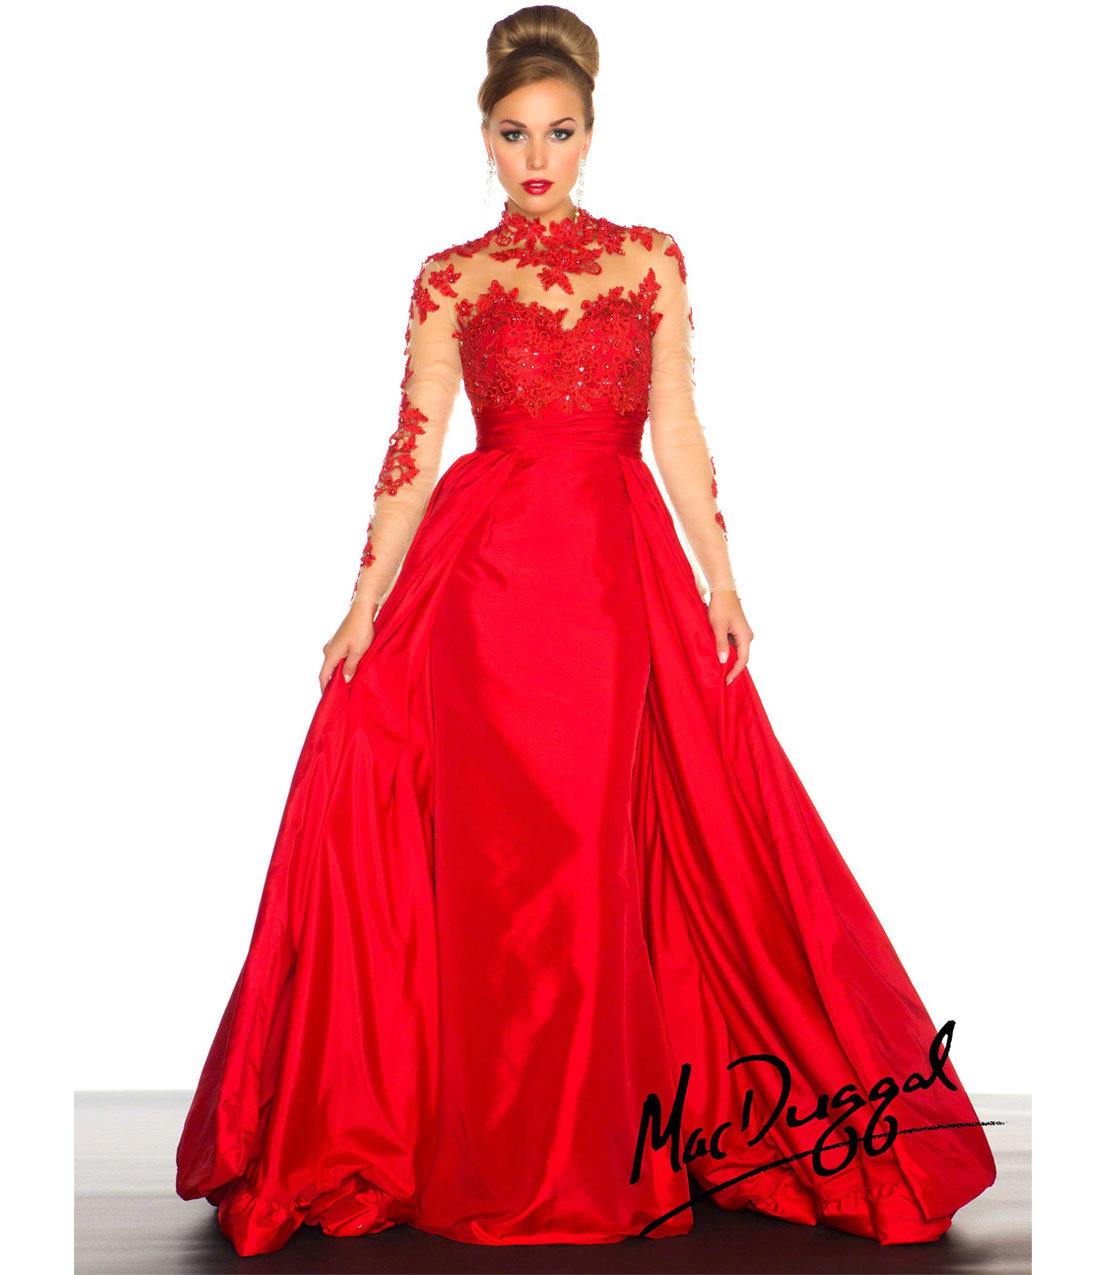 Duggal 2014 Prom Dresses - Red Vintage Inspired Long Sleeve Prom GownVintage Inspired Prom Dresses 2014